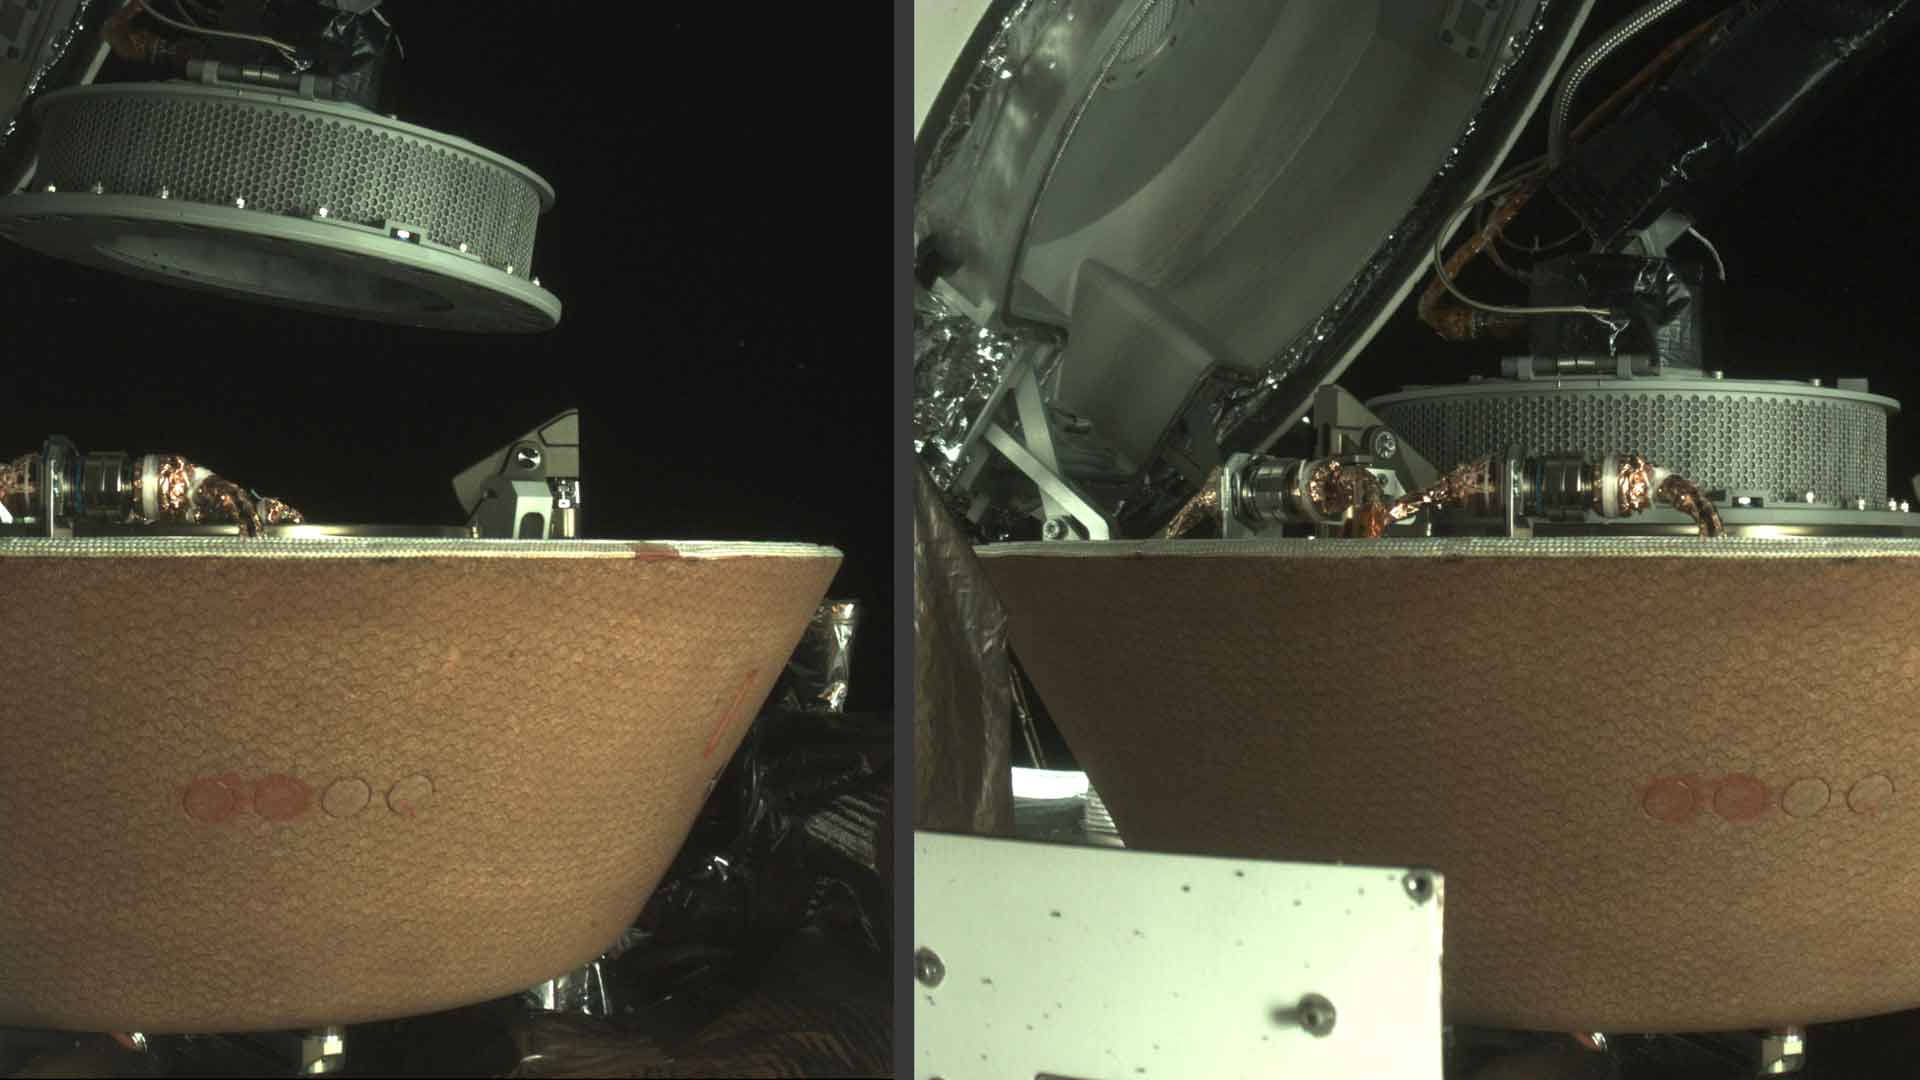 The OSIRIS-REx spacecraft stows the TAGSAM collection head after gathering samples from the surface of the asteroid Bennu, Oct. 29, 2020